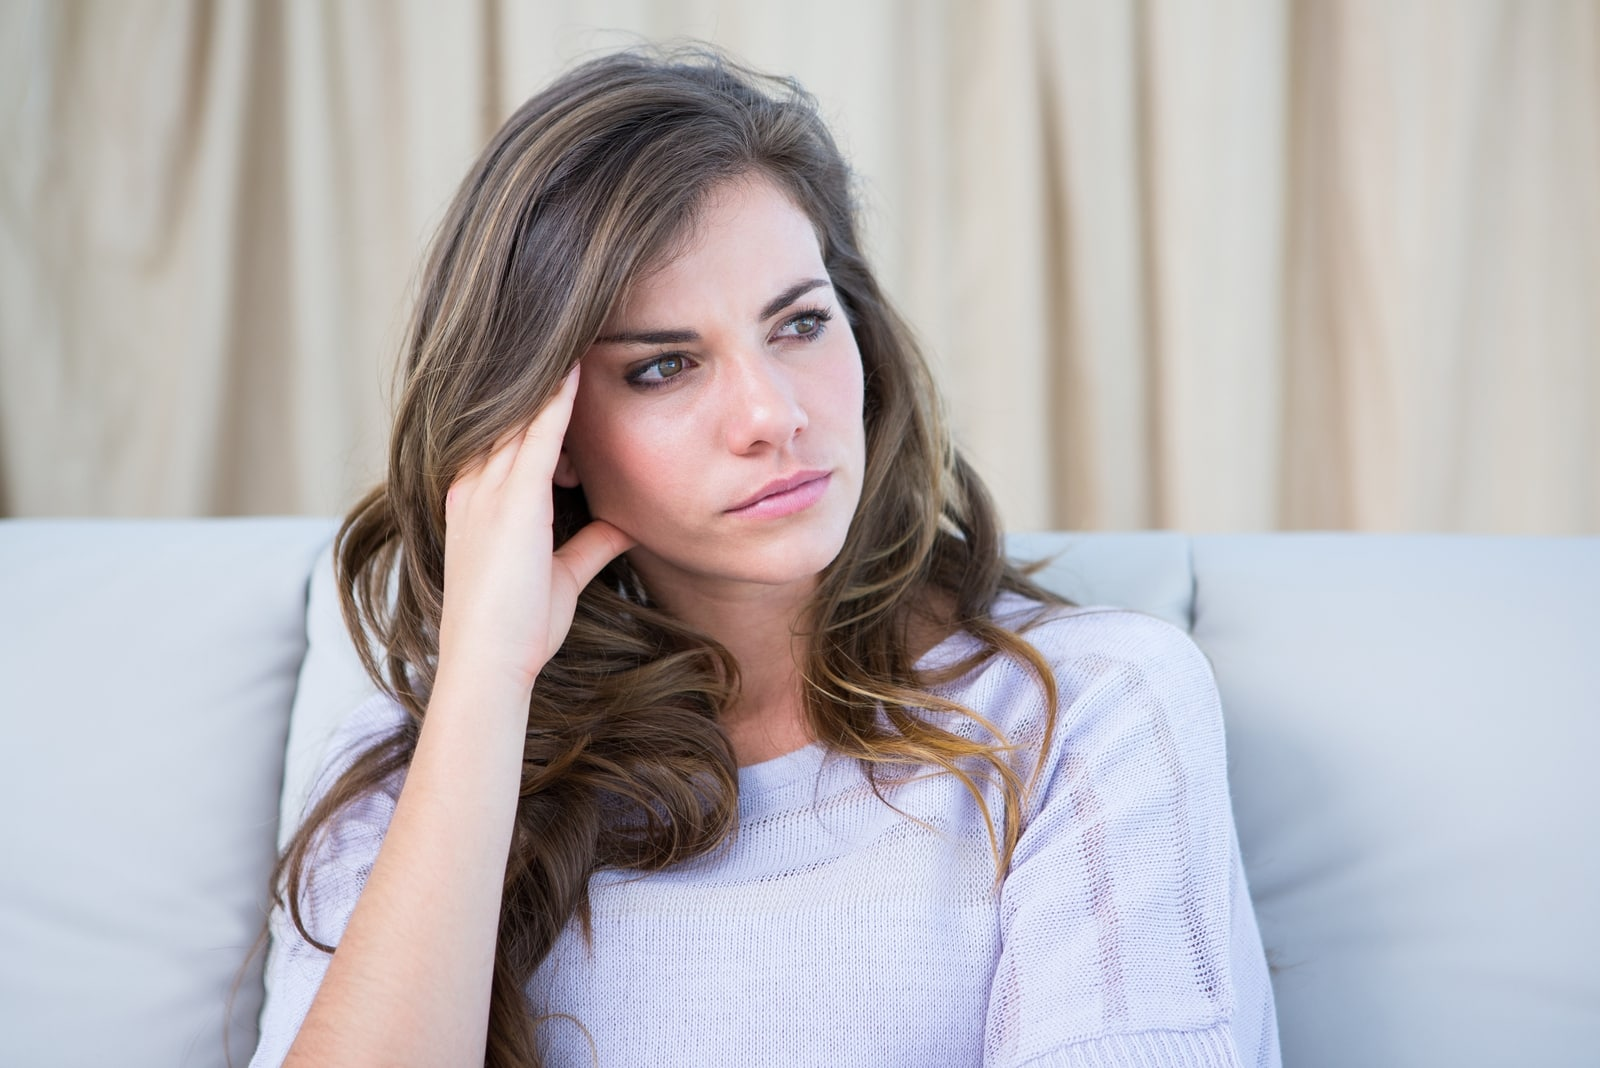 pensive woman in white top sitting on sofa